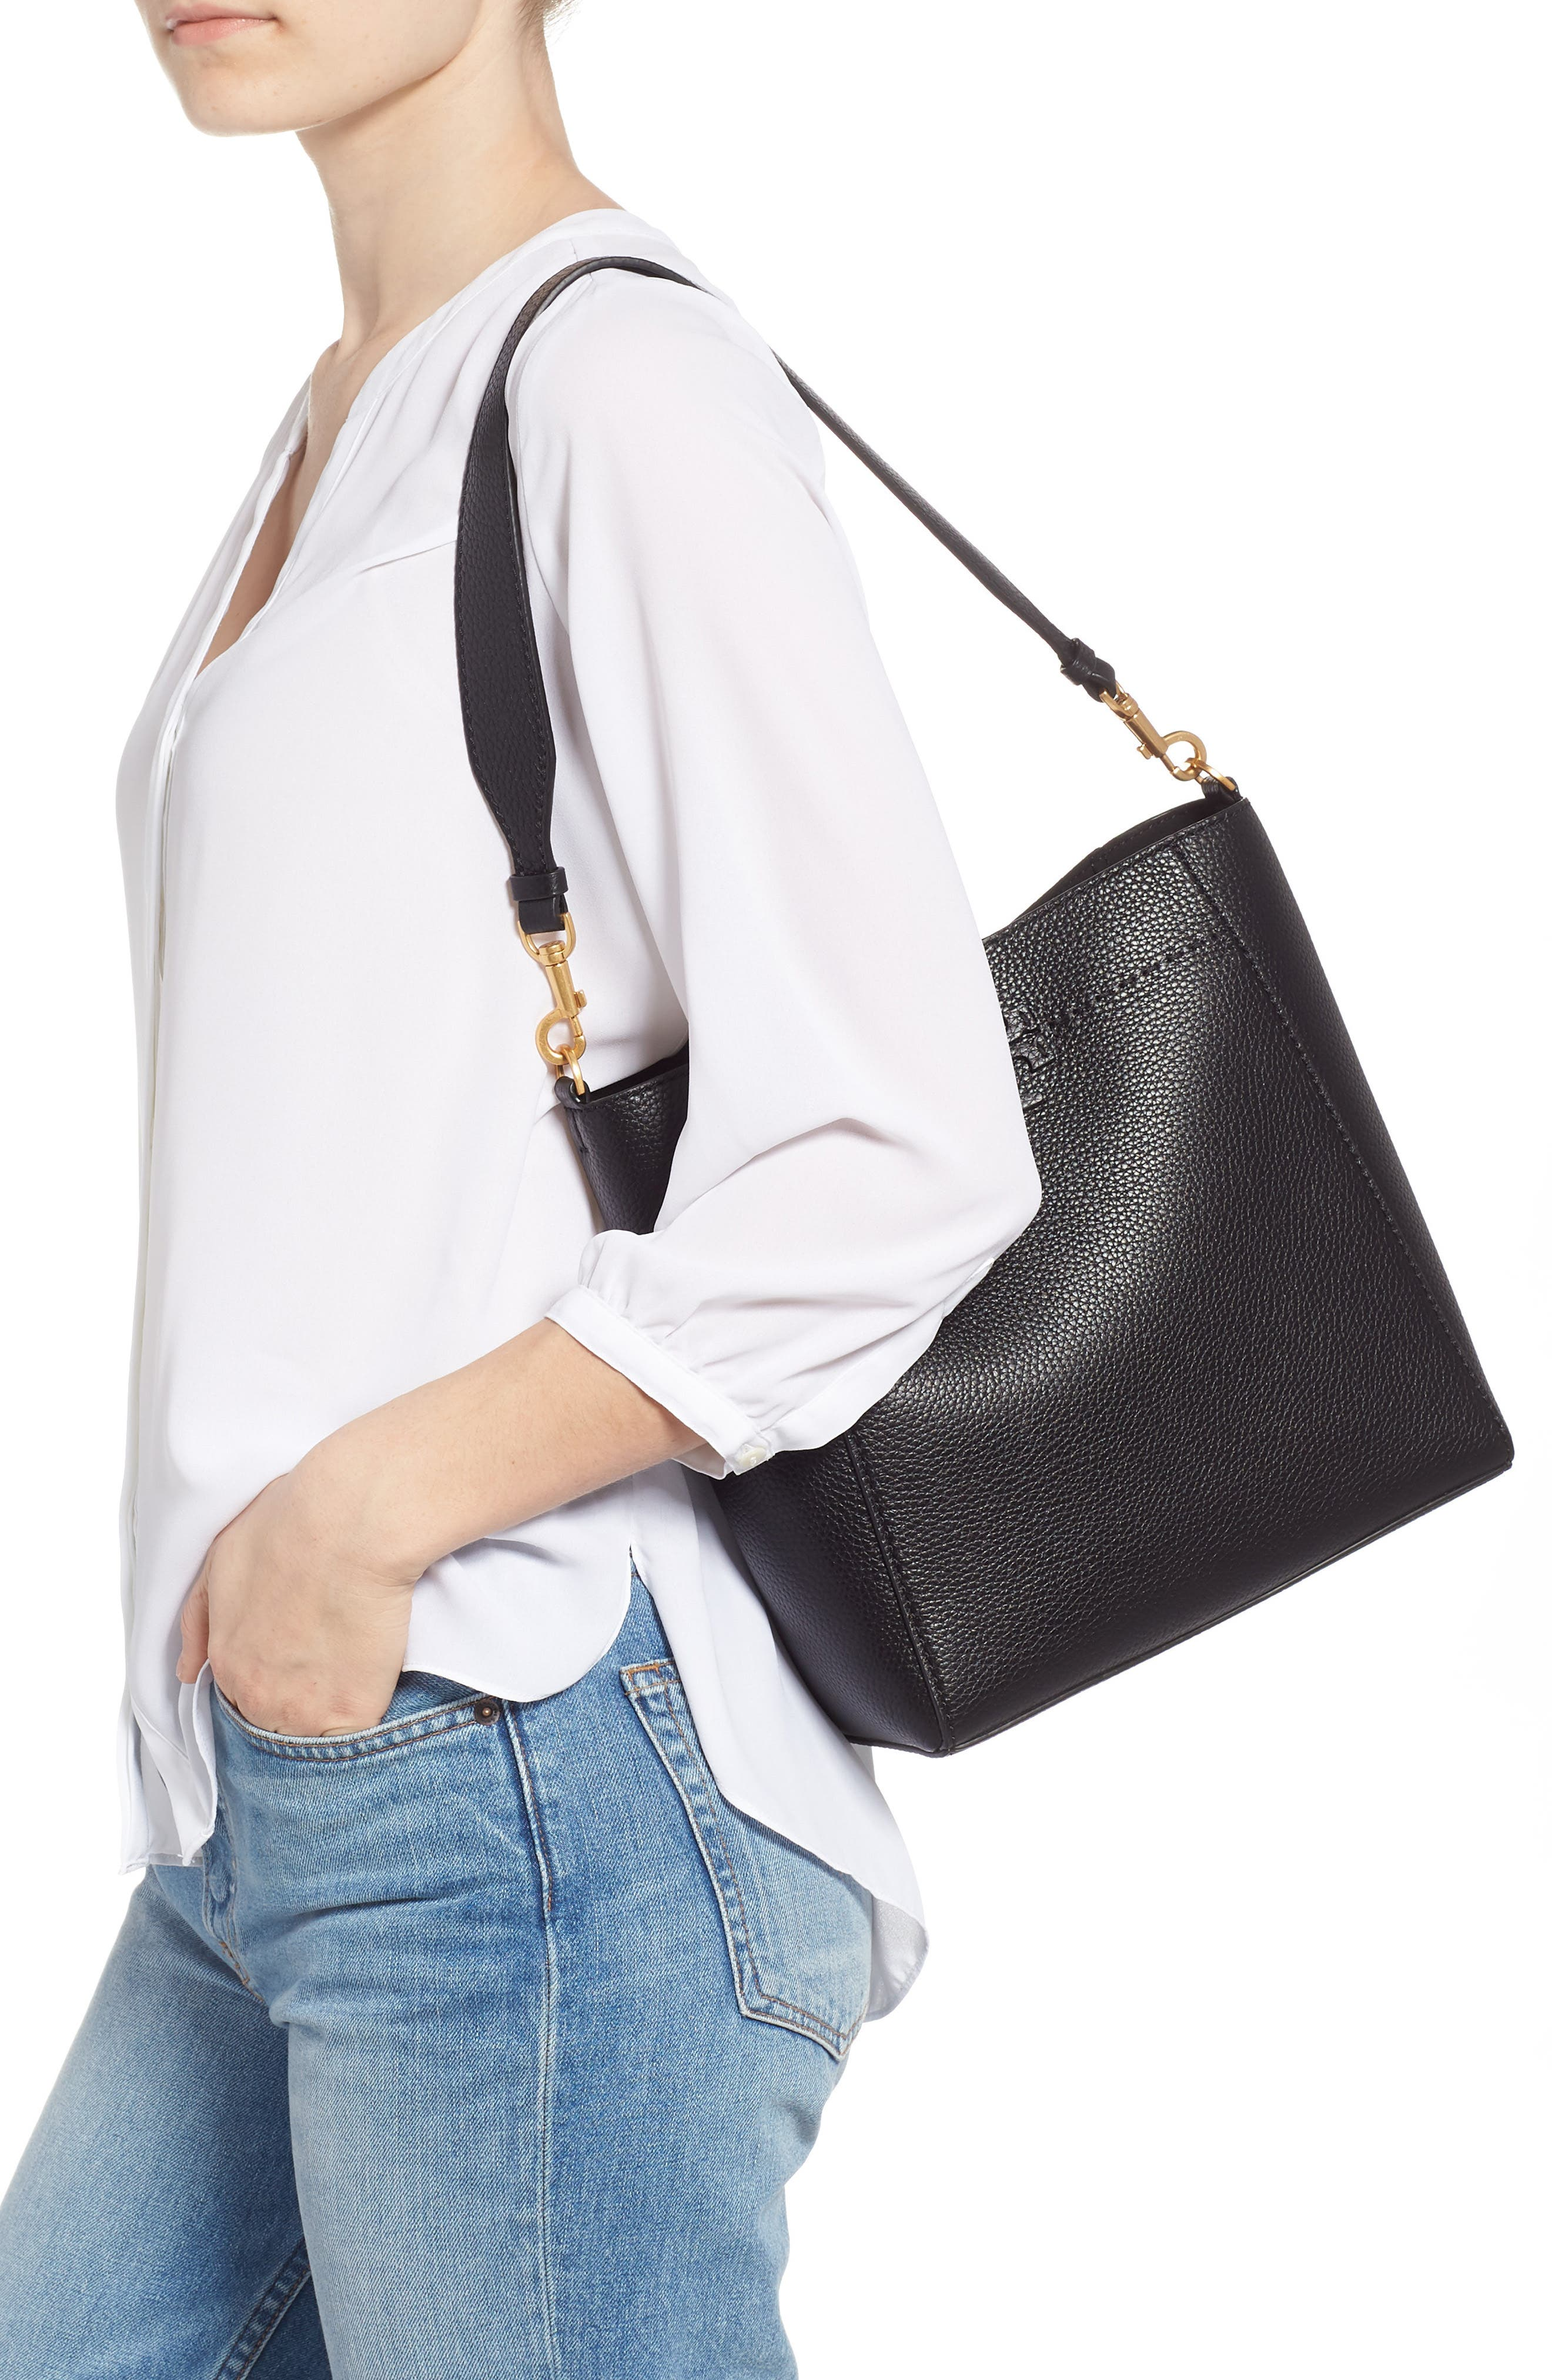 TORY BURCH, McGraw Leather Hobo, Alternate thumbnail 2, color, BLACK